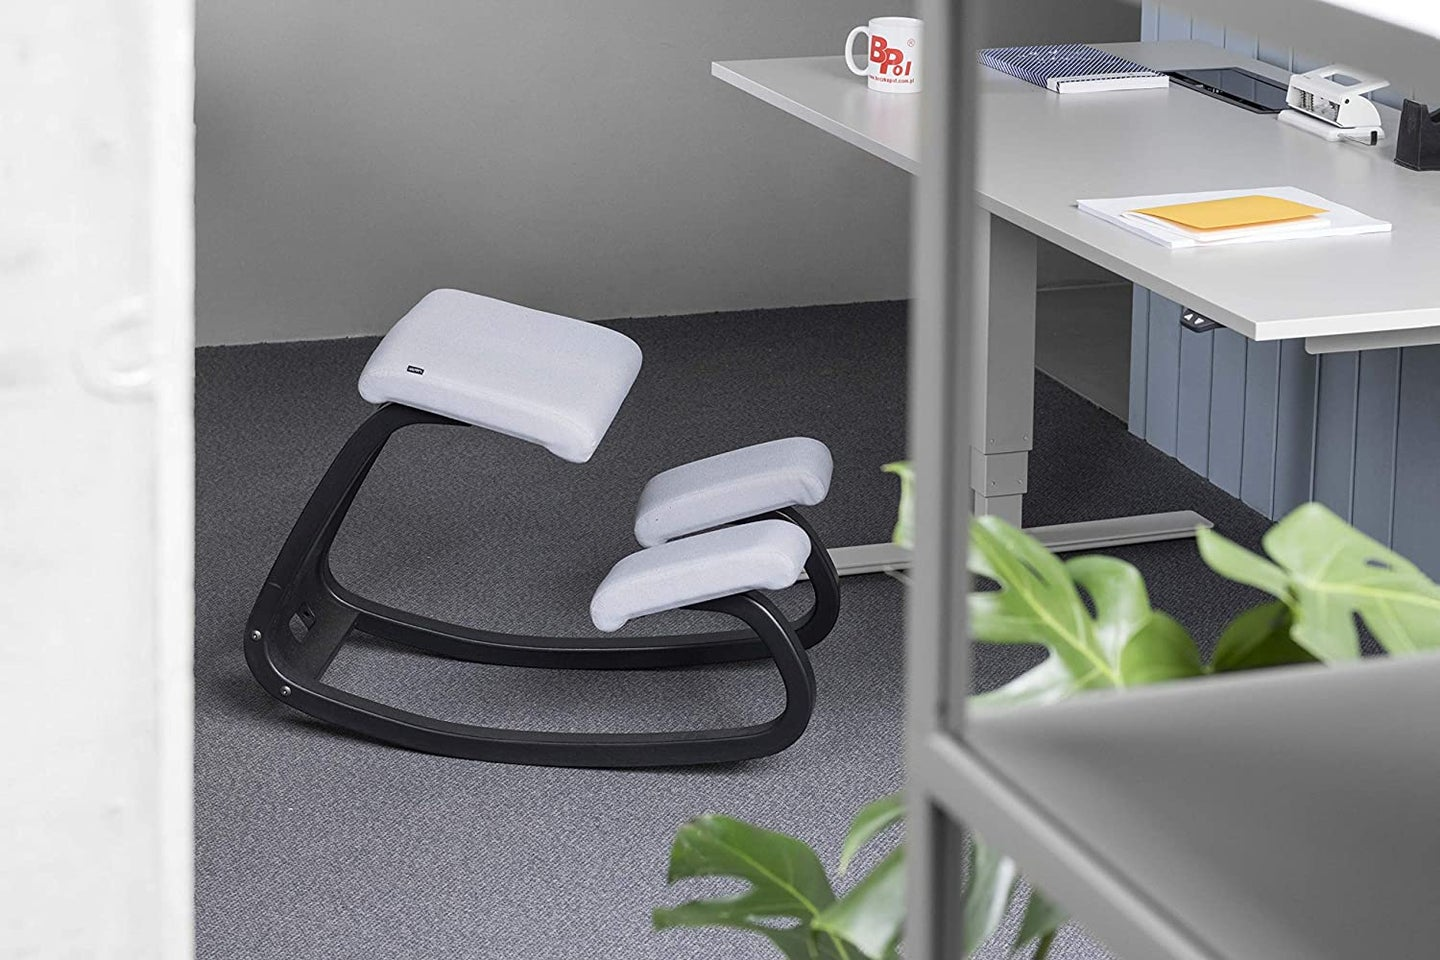 black and grey kneeling chair next to a silver desk